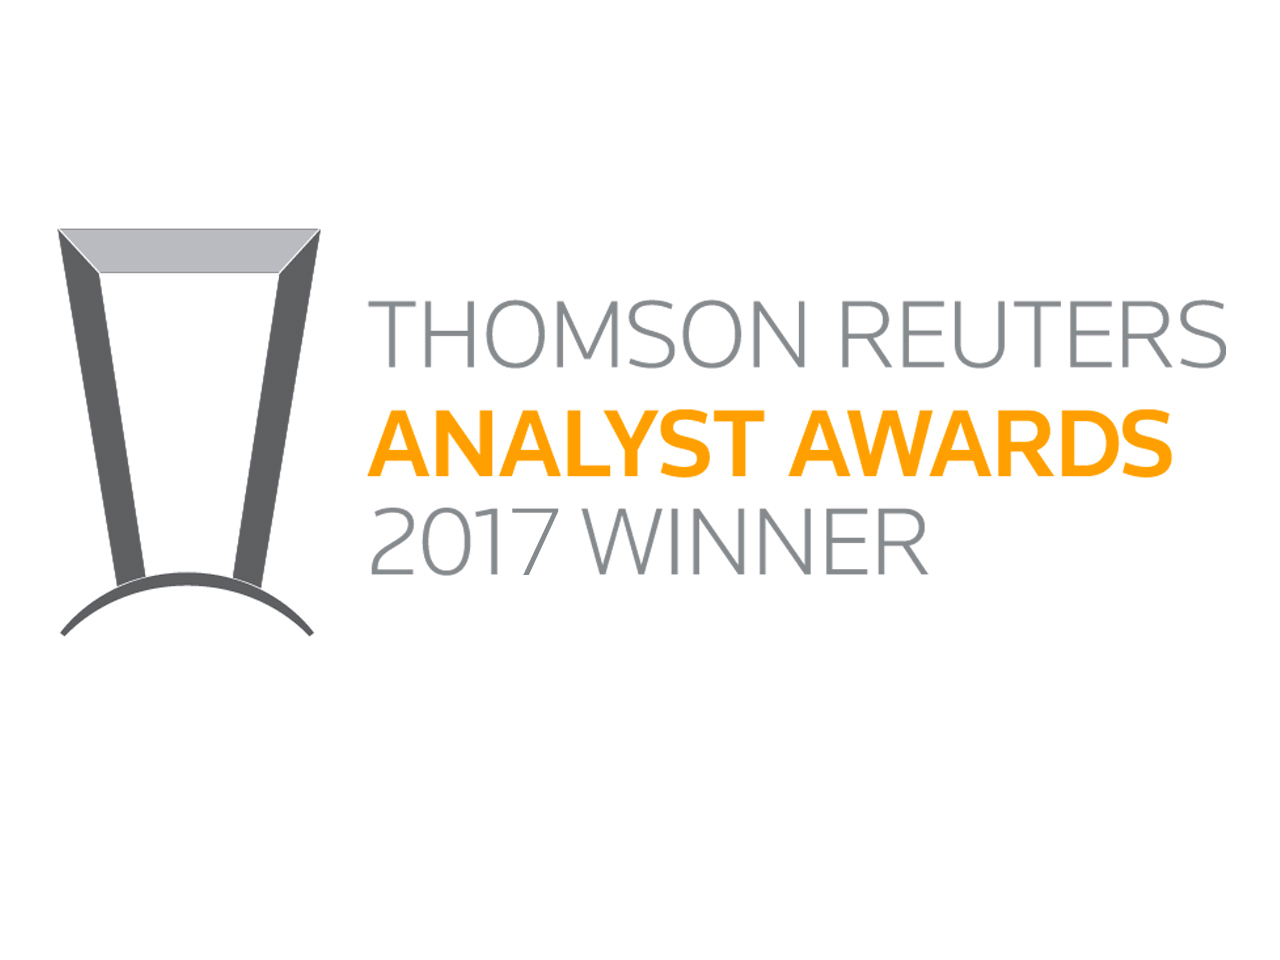 Alumni win the 2017 Latin America Thomson Reuters Analyst Awards